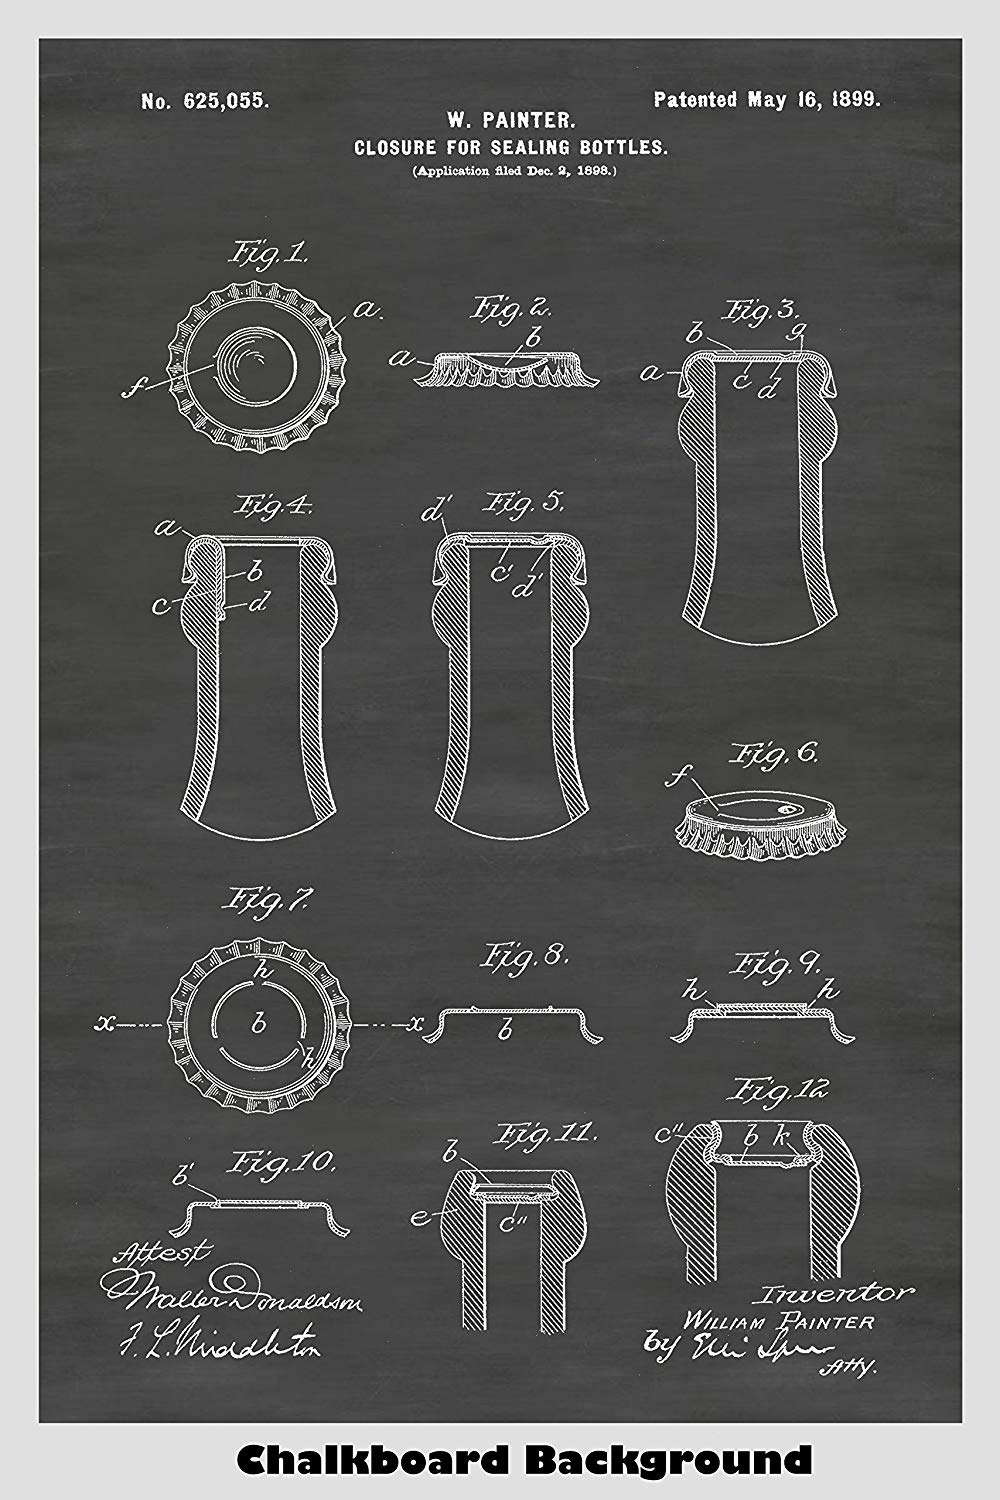 Patent poster art of a beer bottle cap sealing device